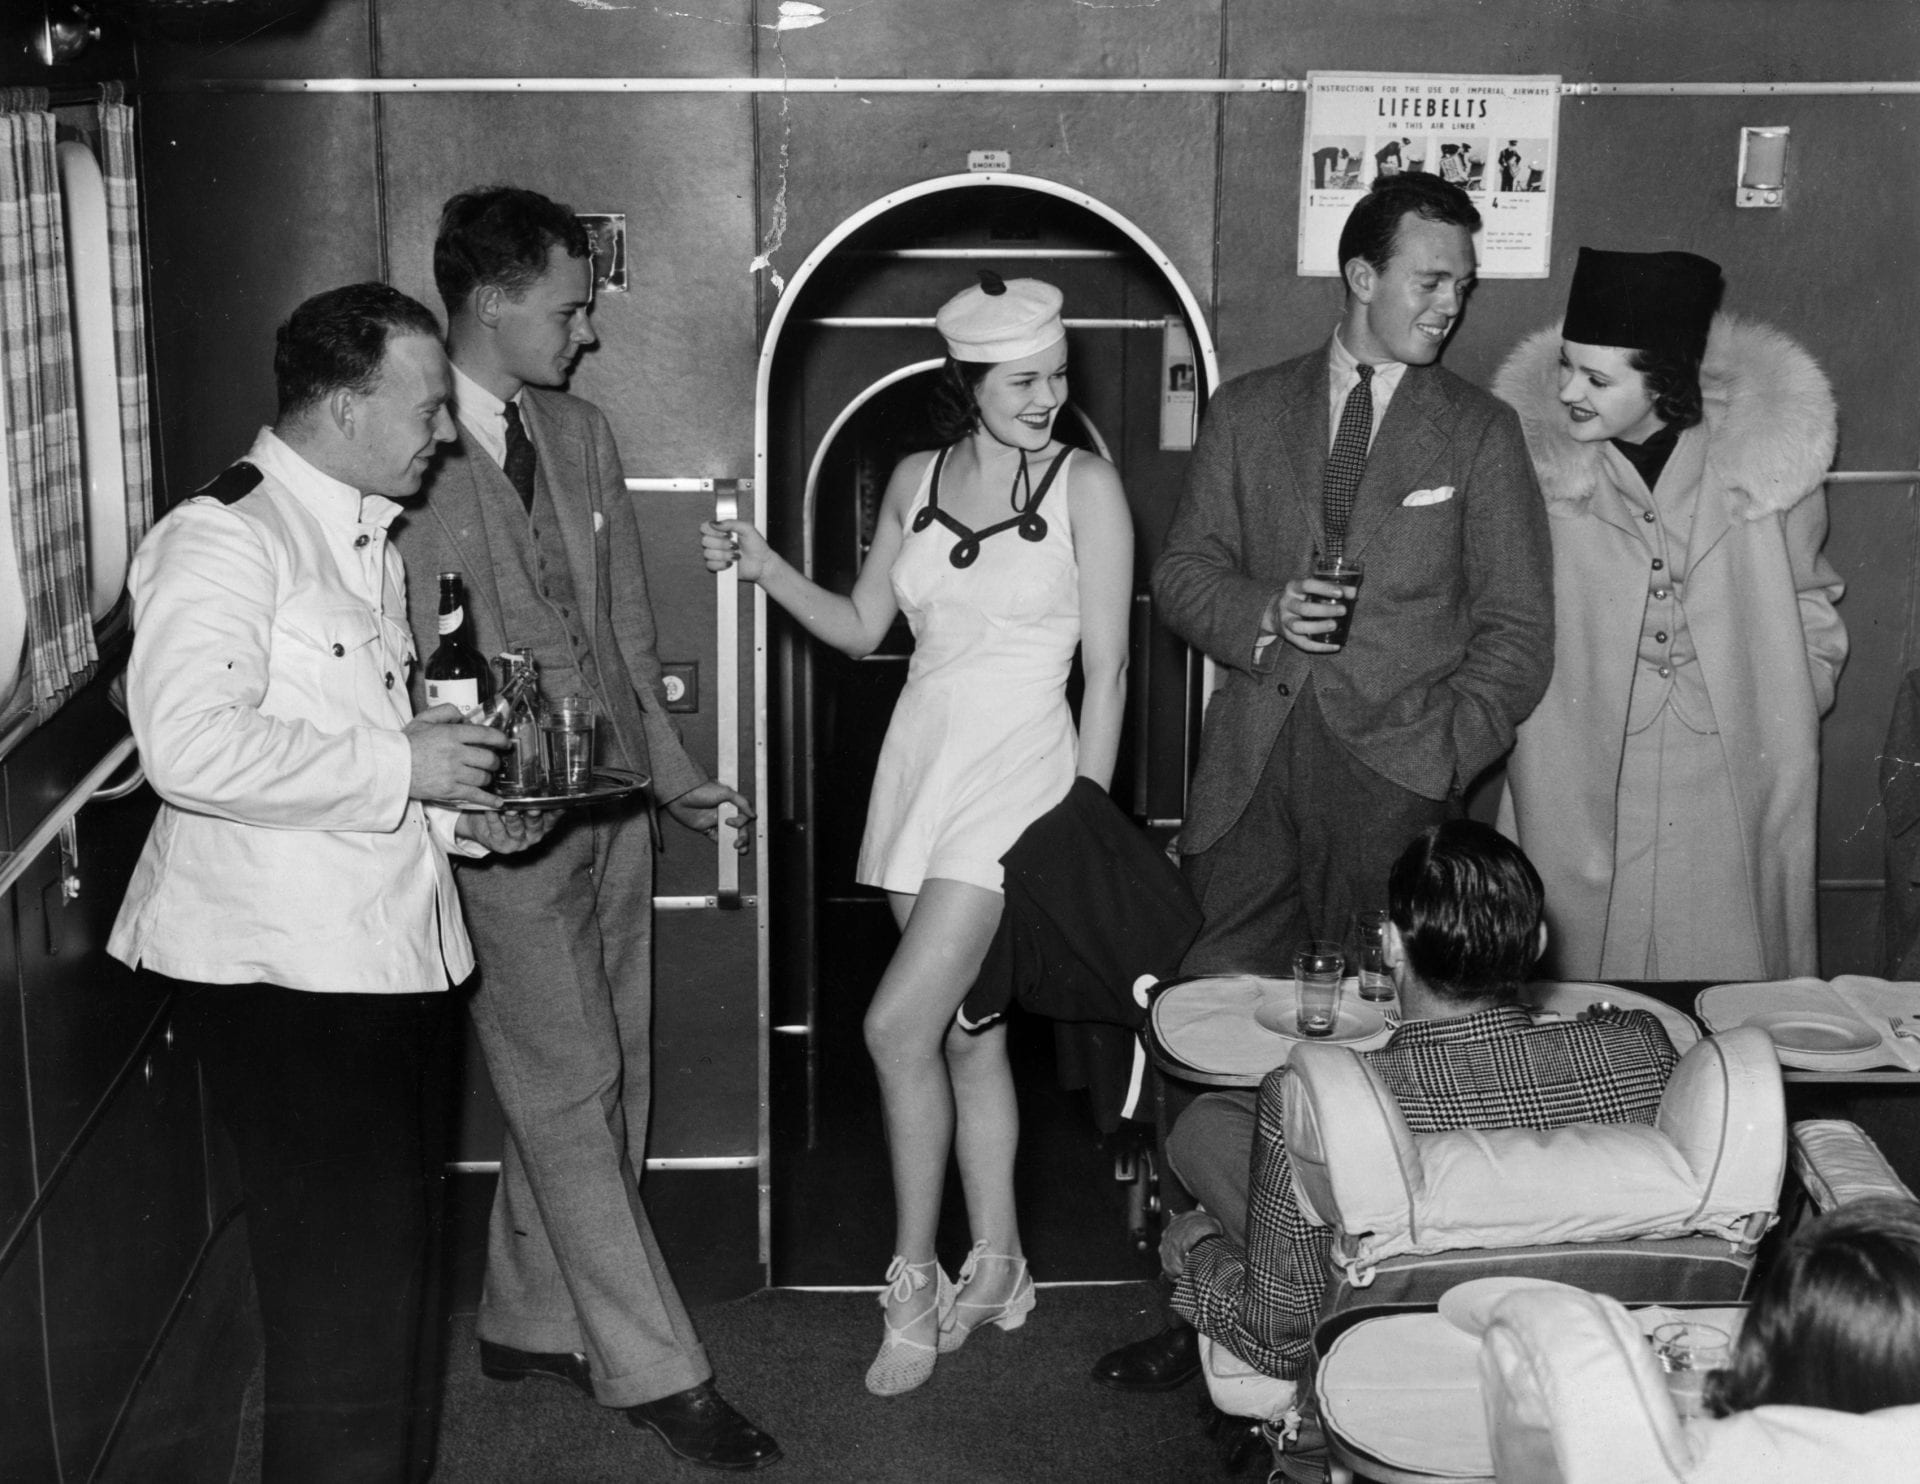 vintage-air-travel-stewardess-flight-attendant-glamorous-in-flight-sex-sells-seats-1940s